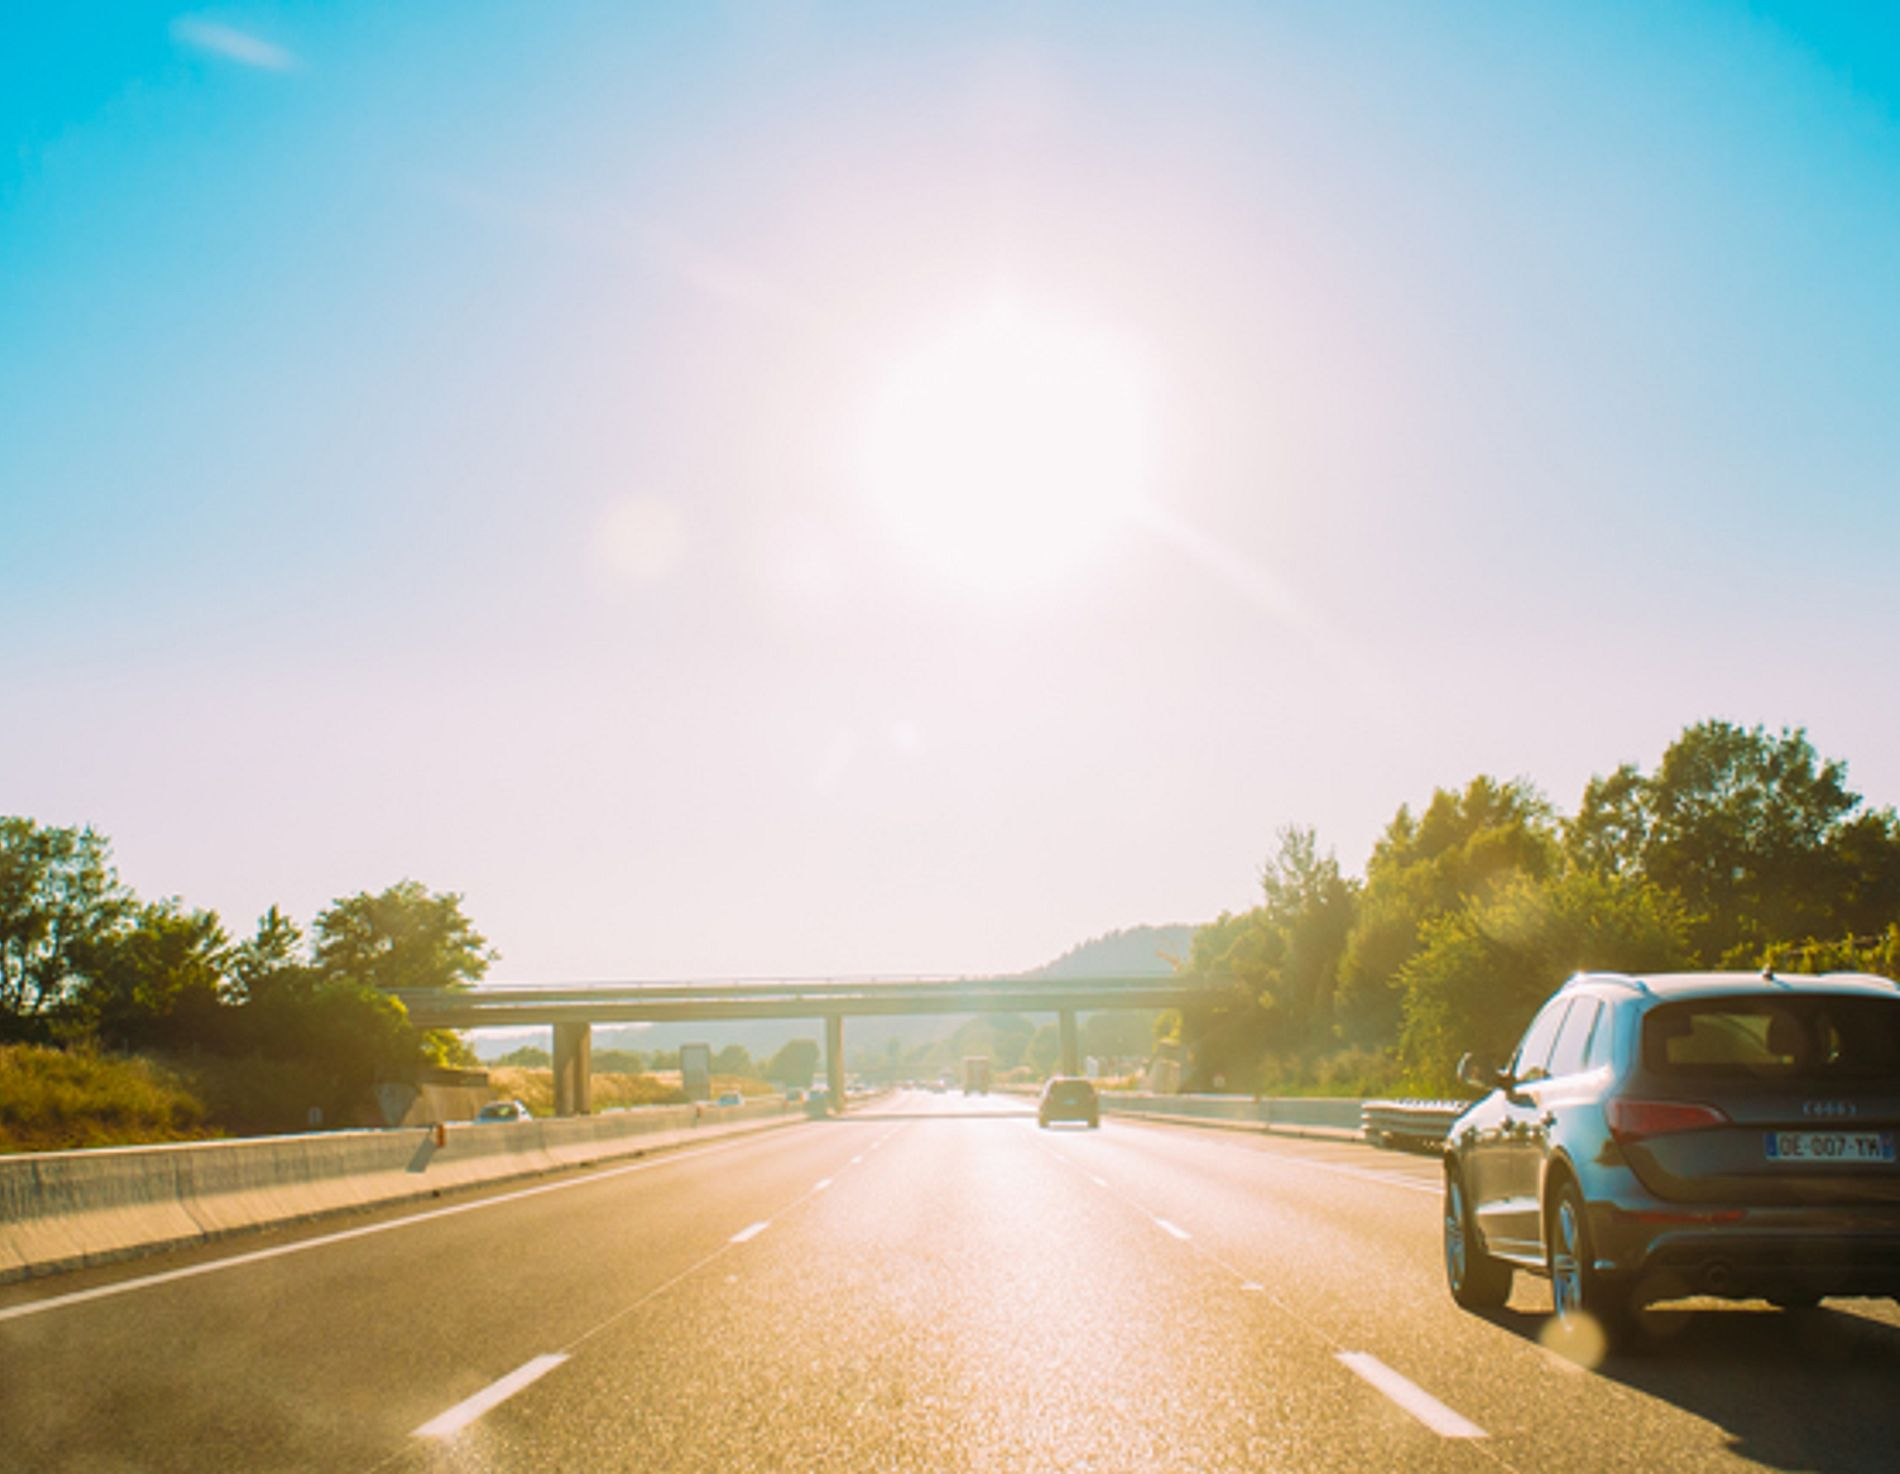 Cars driving down a sunny highway